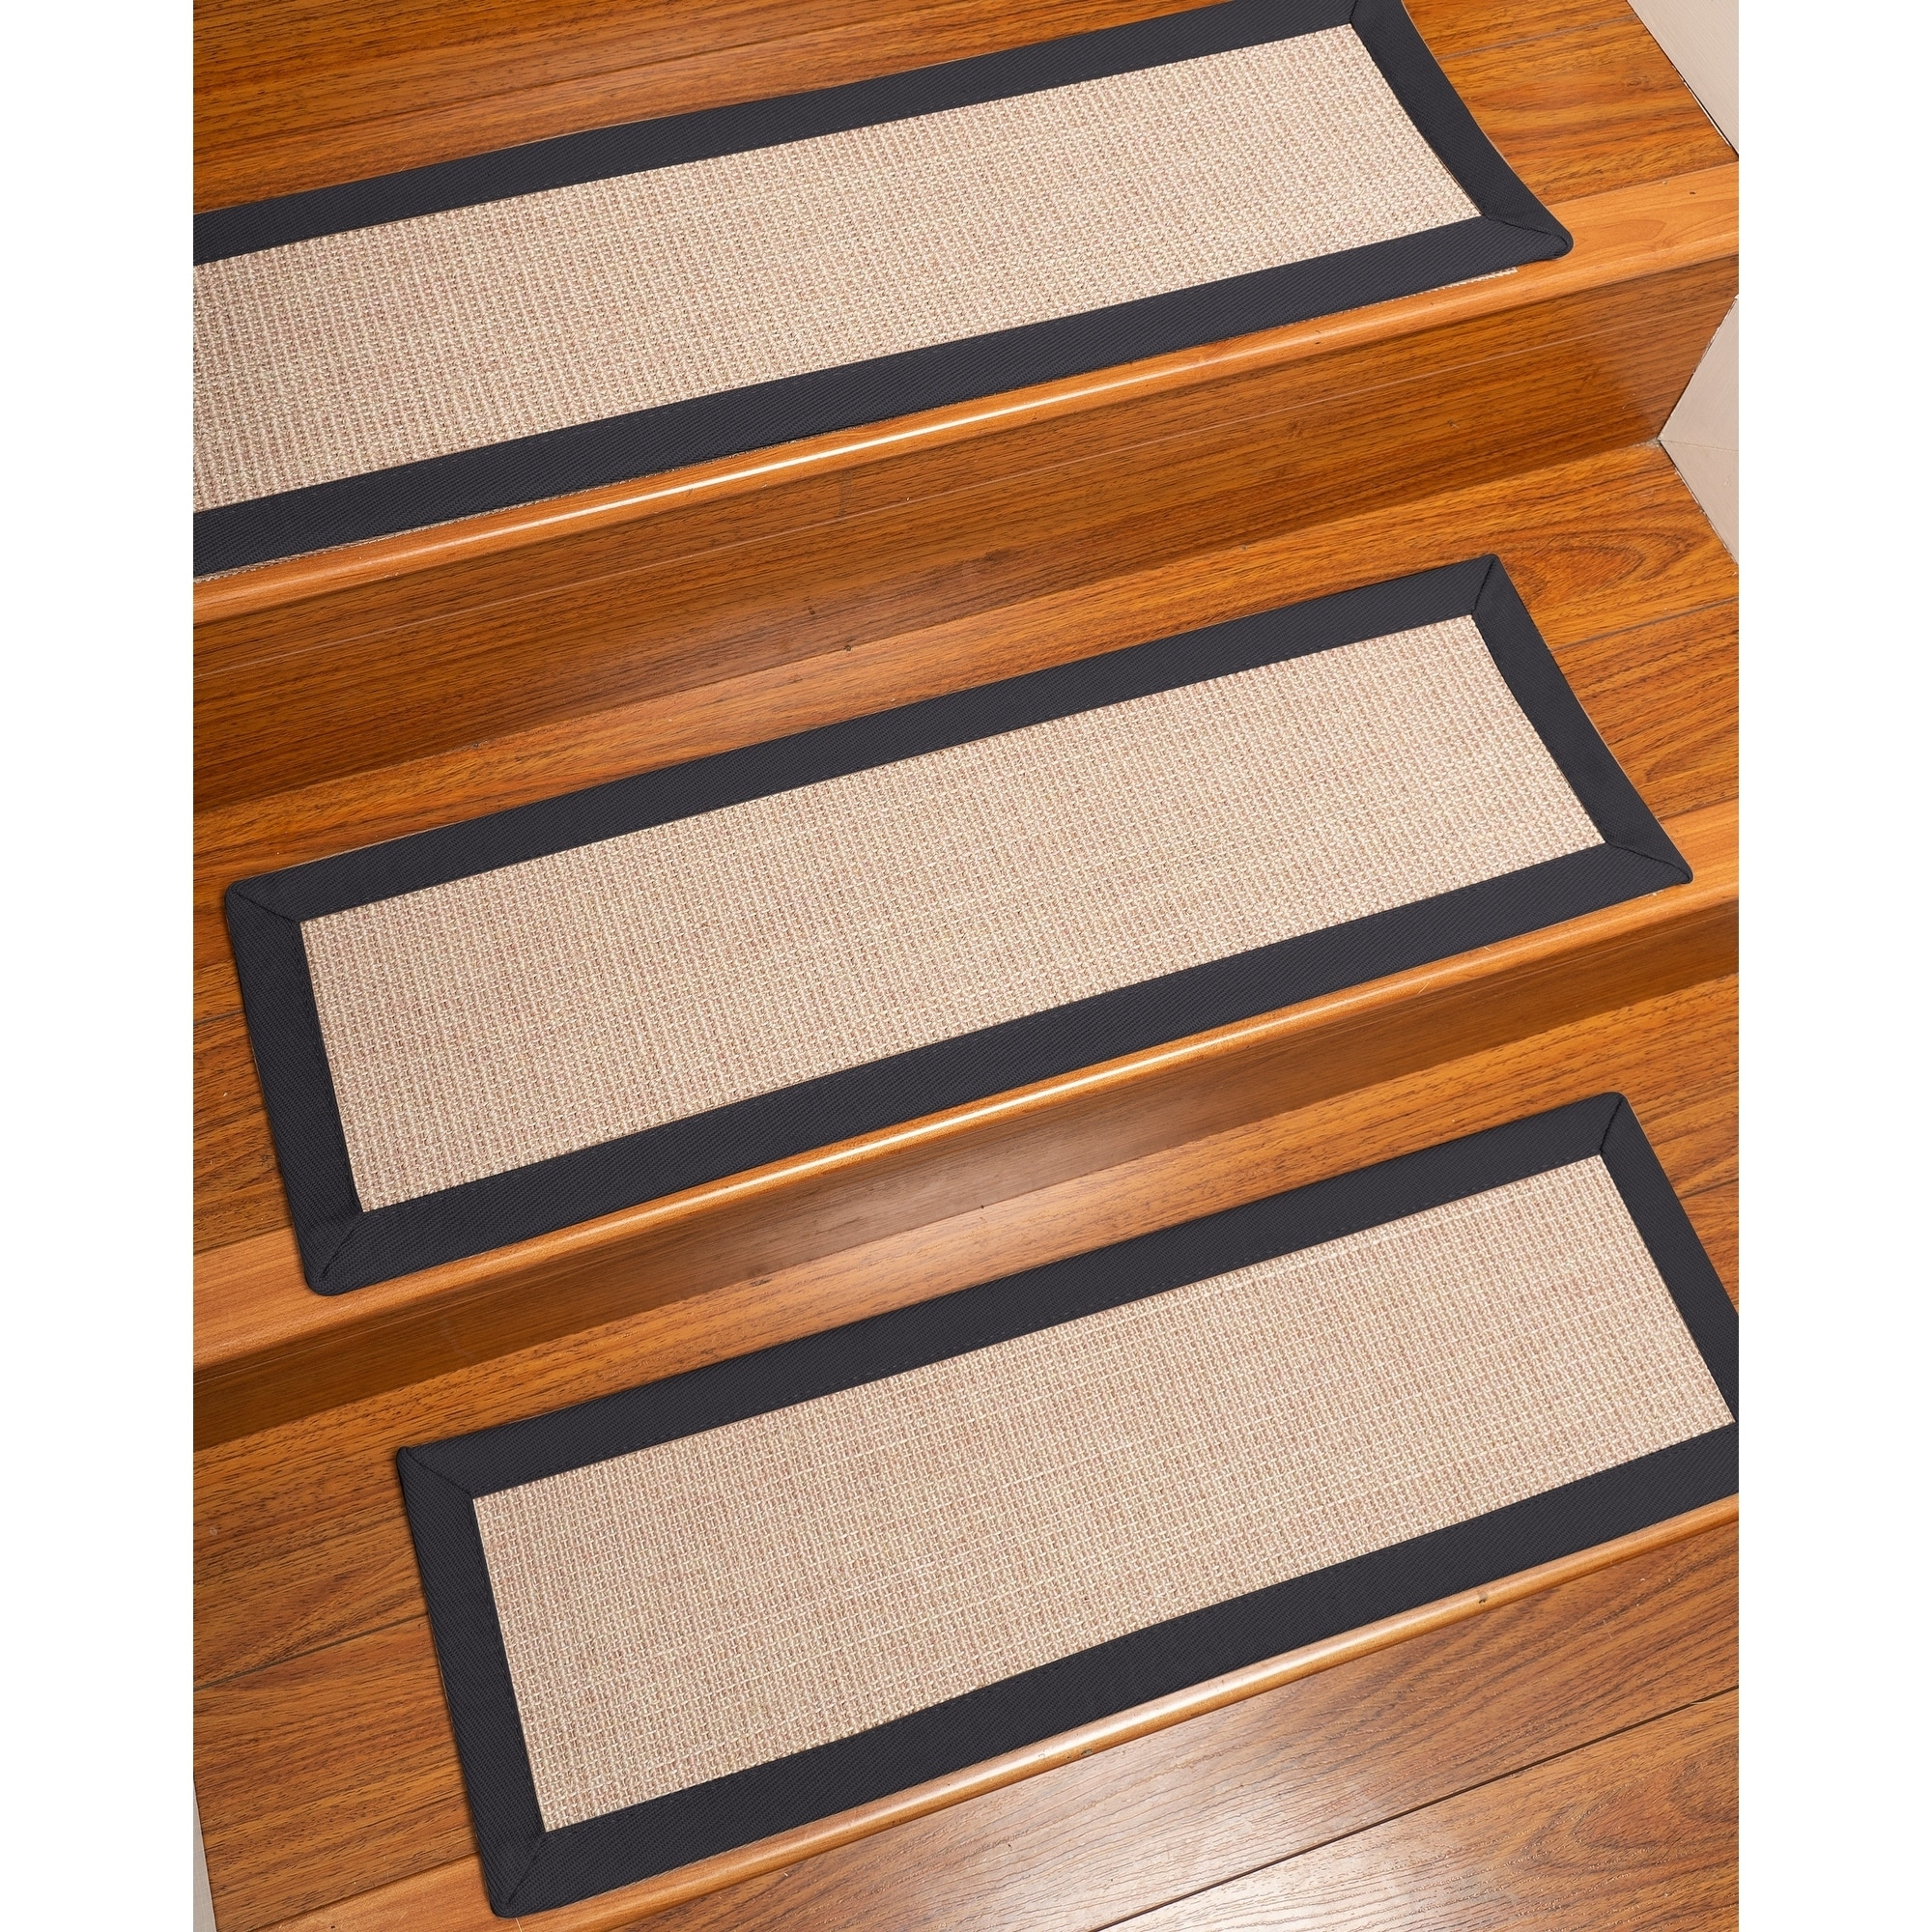 Etonnant Natural Area Rugs 100% Natural Fiber Blair, Sisal Beige/Rose, Handmade  Custom Stair Treads Carpet Set Of 4 Midnight Blue Border